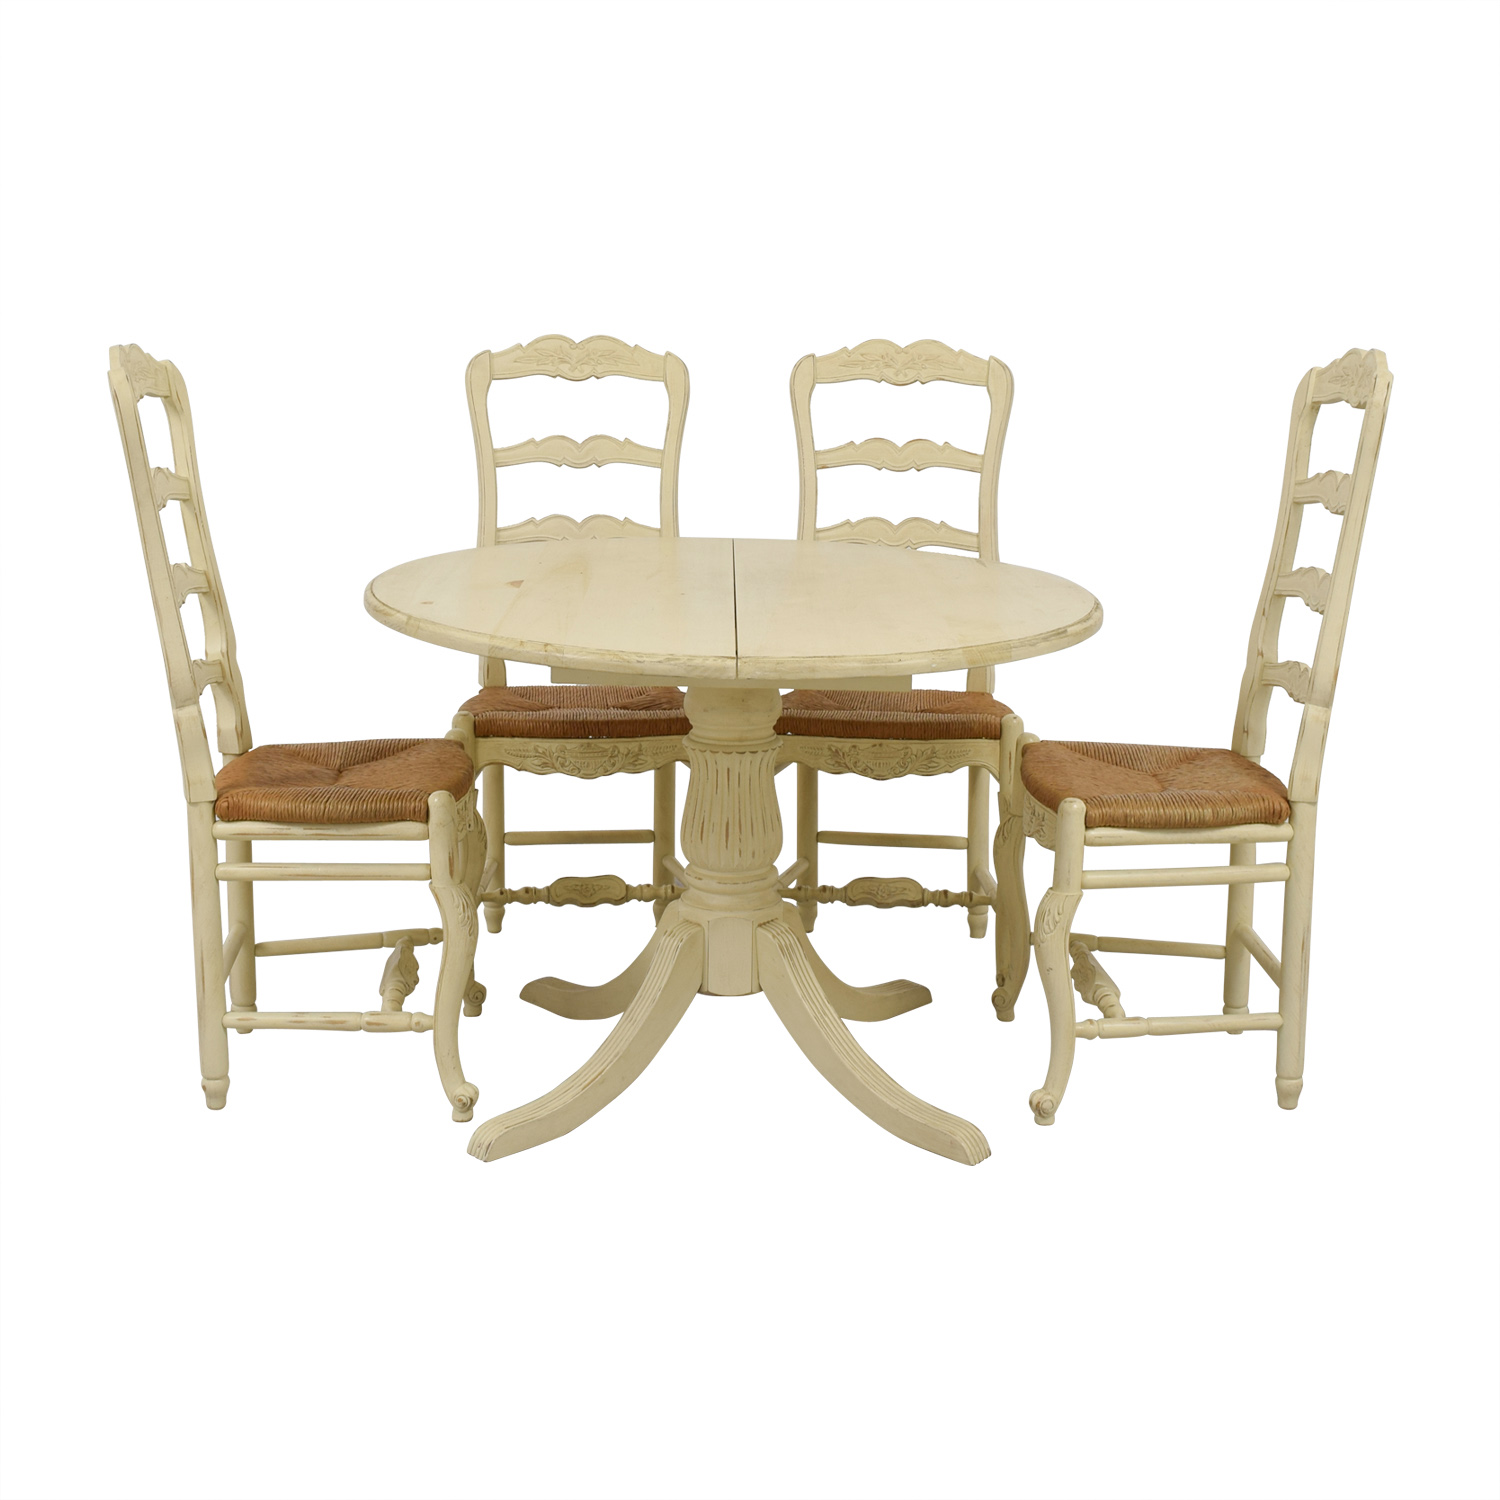 Habersham Habersham White Bone Round Dining Set with Leaf Extention second hand